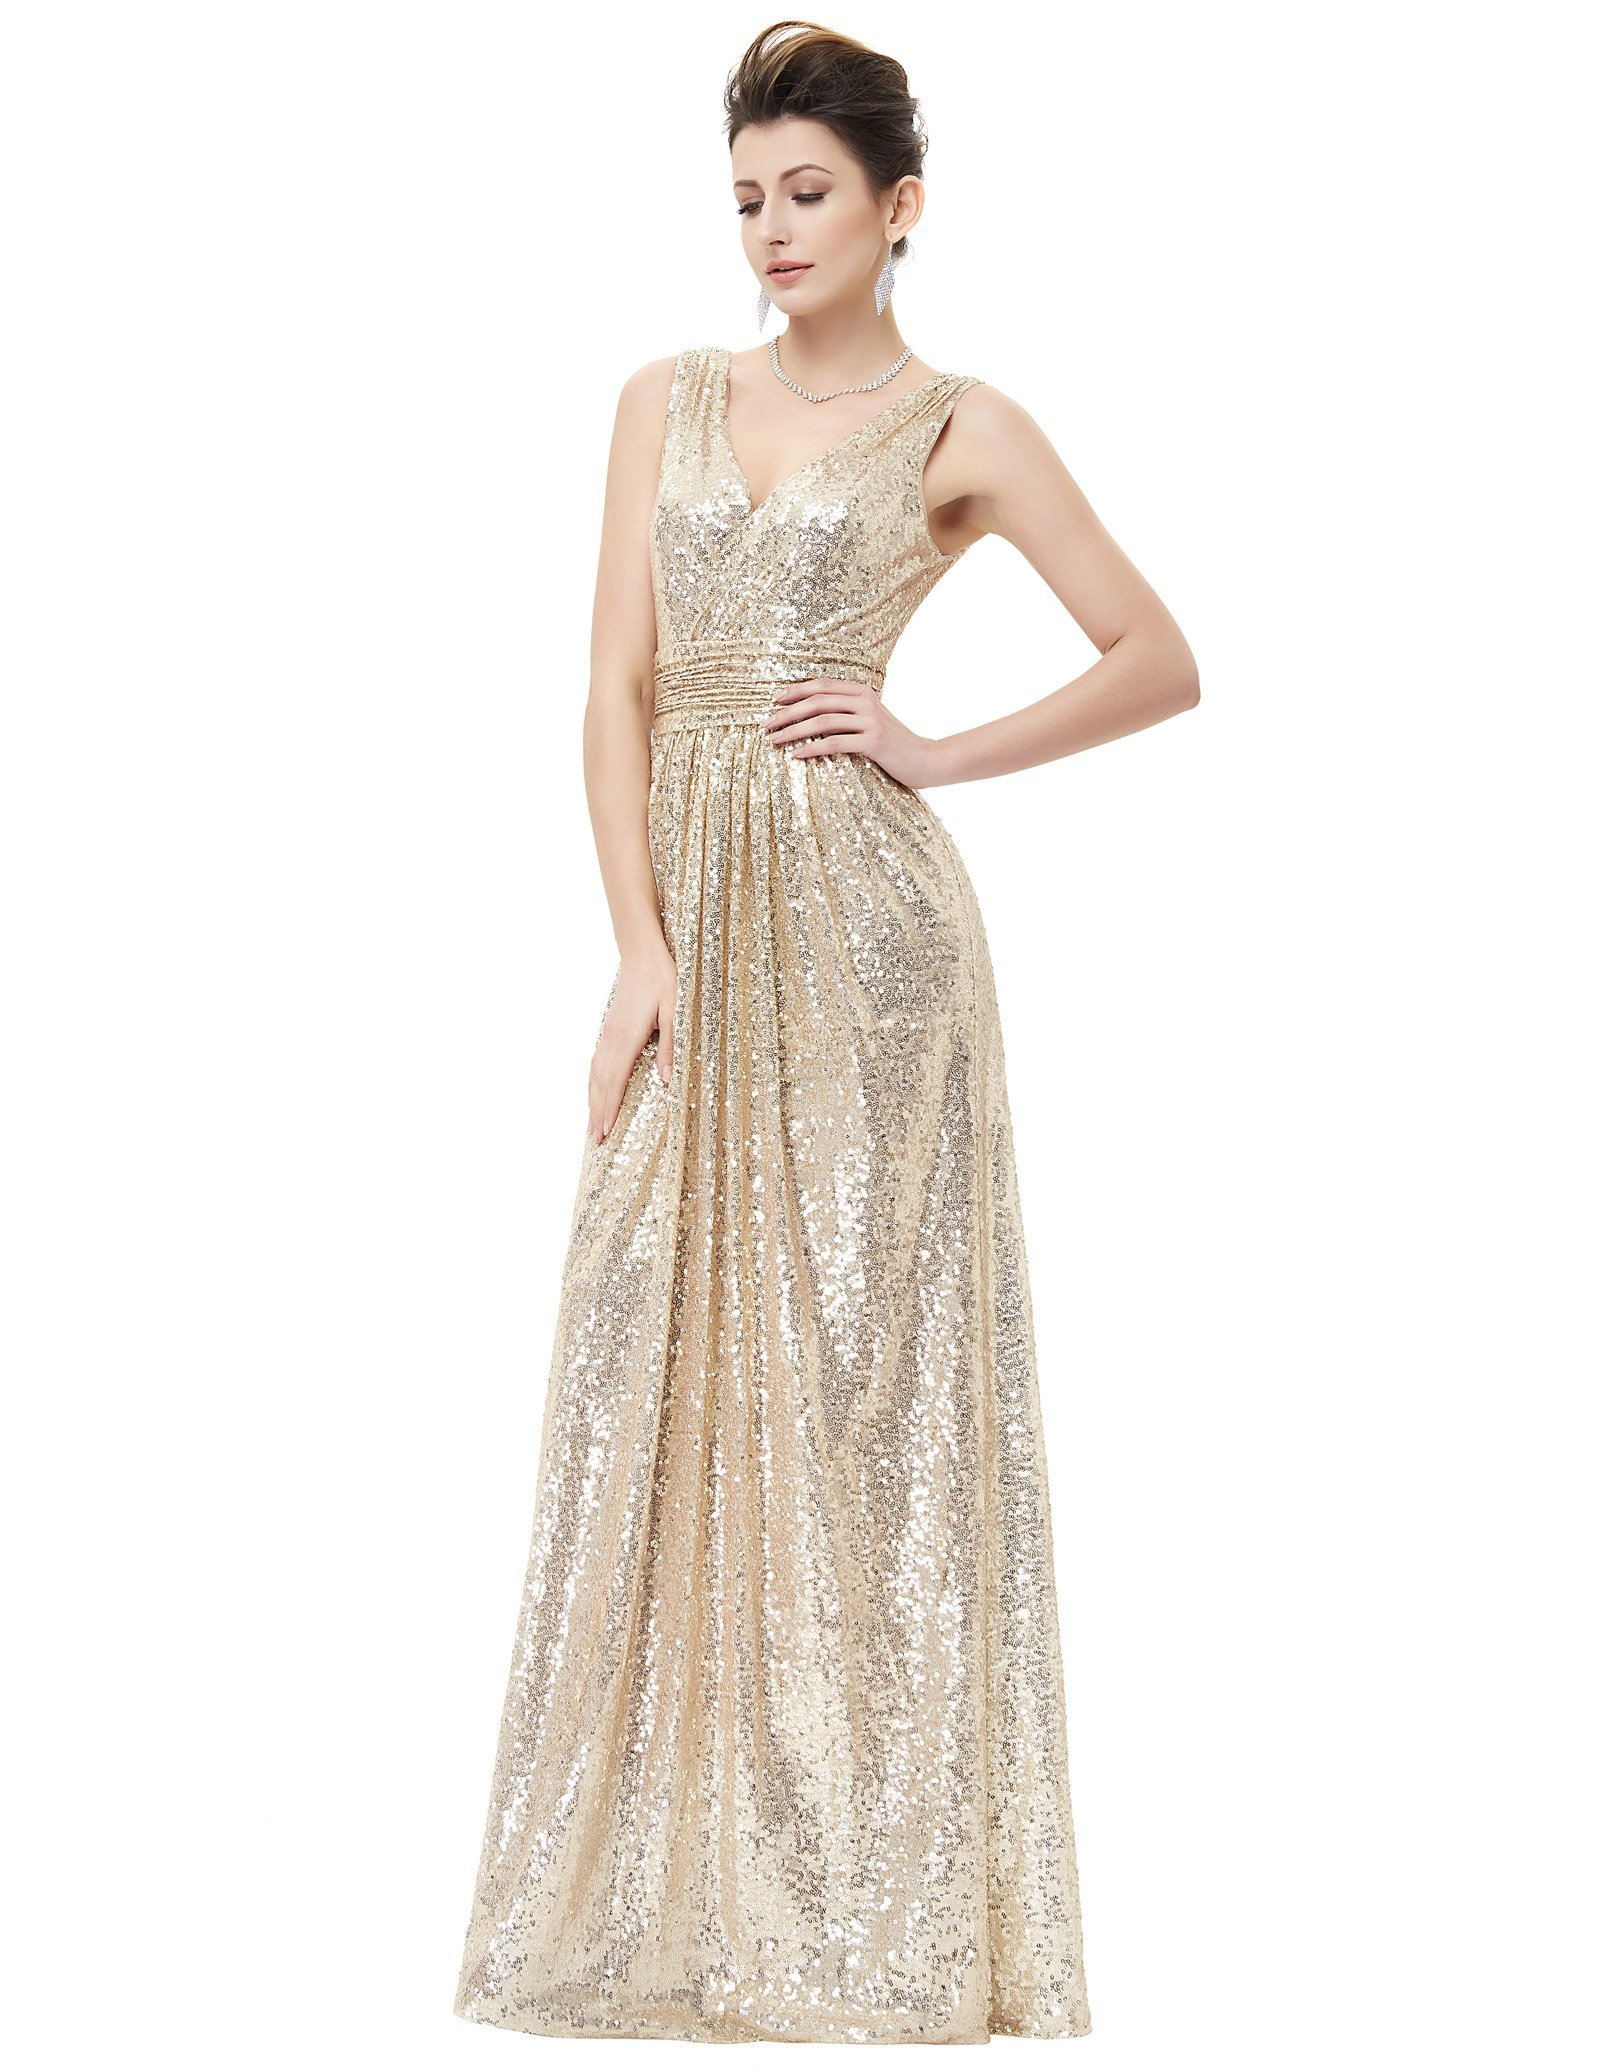 20775706fc8d Women Formal Wedding Bridesmaid High-waist Party Ball Prom Gown Cocktail  Dress. $18.88. Kate Kasin V Neck Shining Evening Plus Size Prom Dress Light  Gold ...